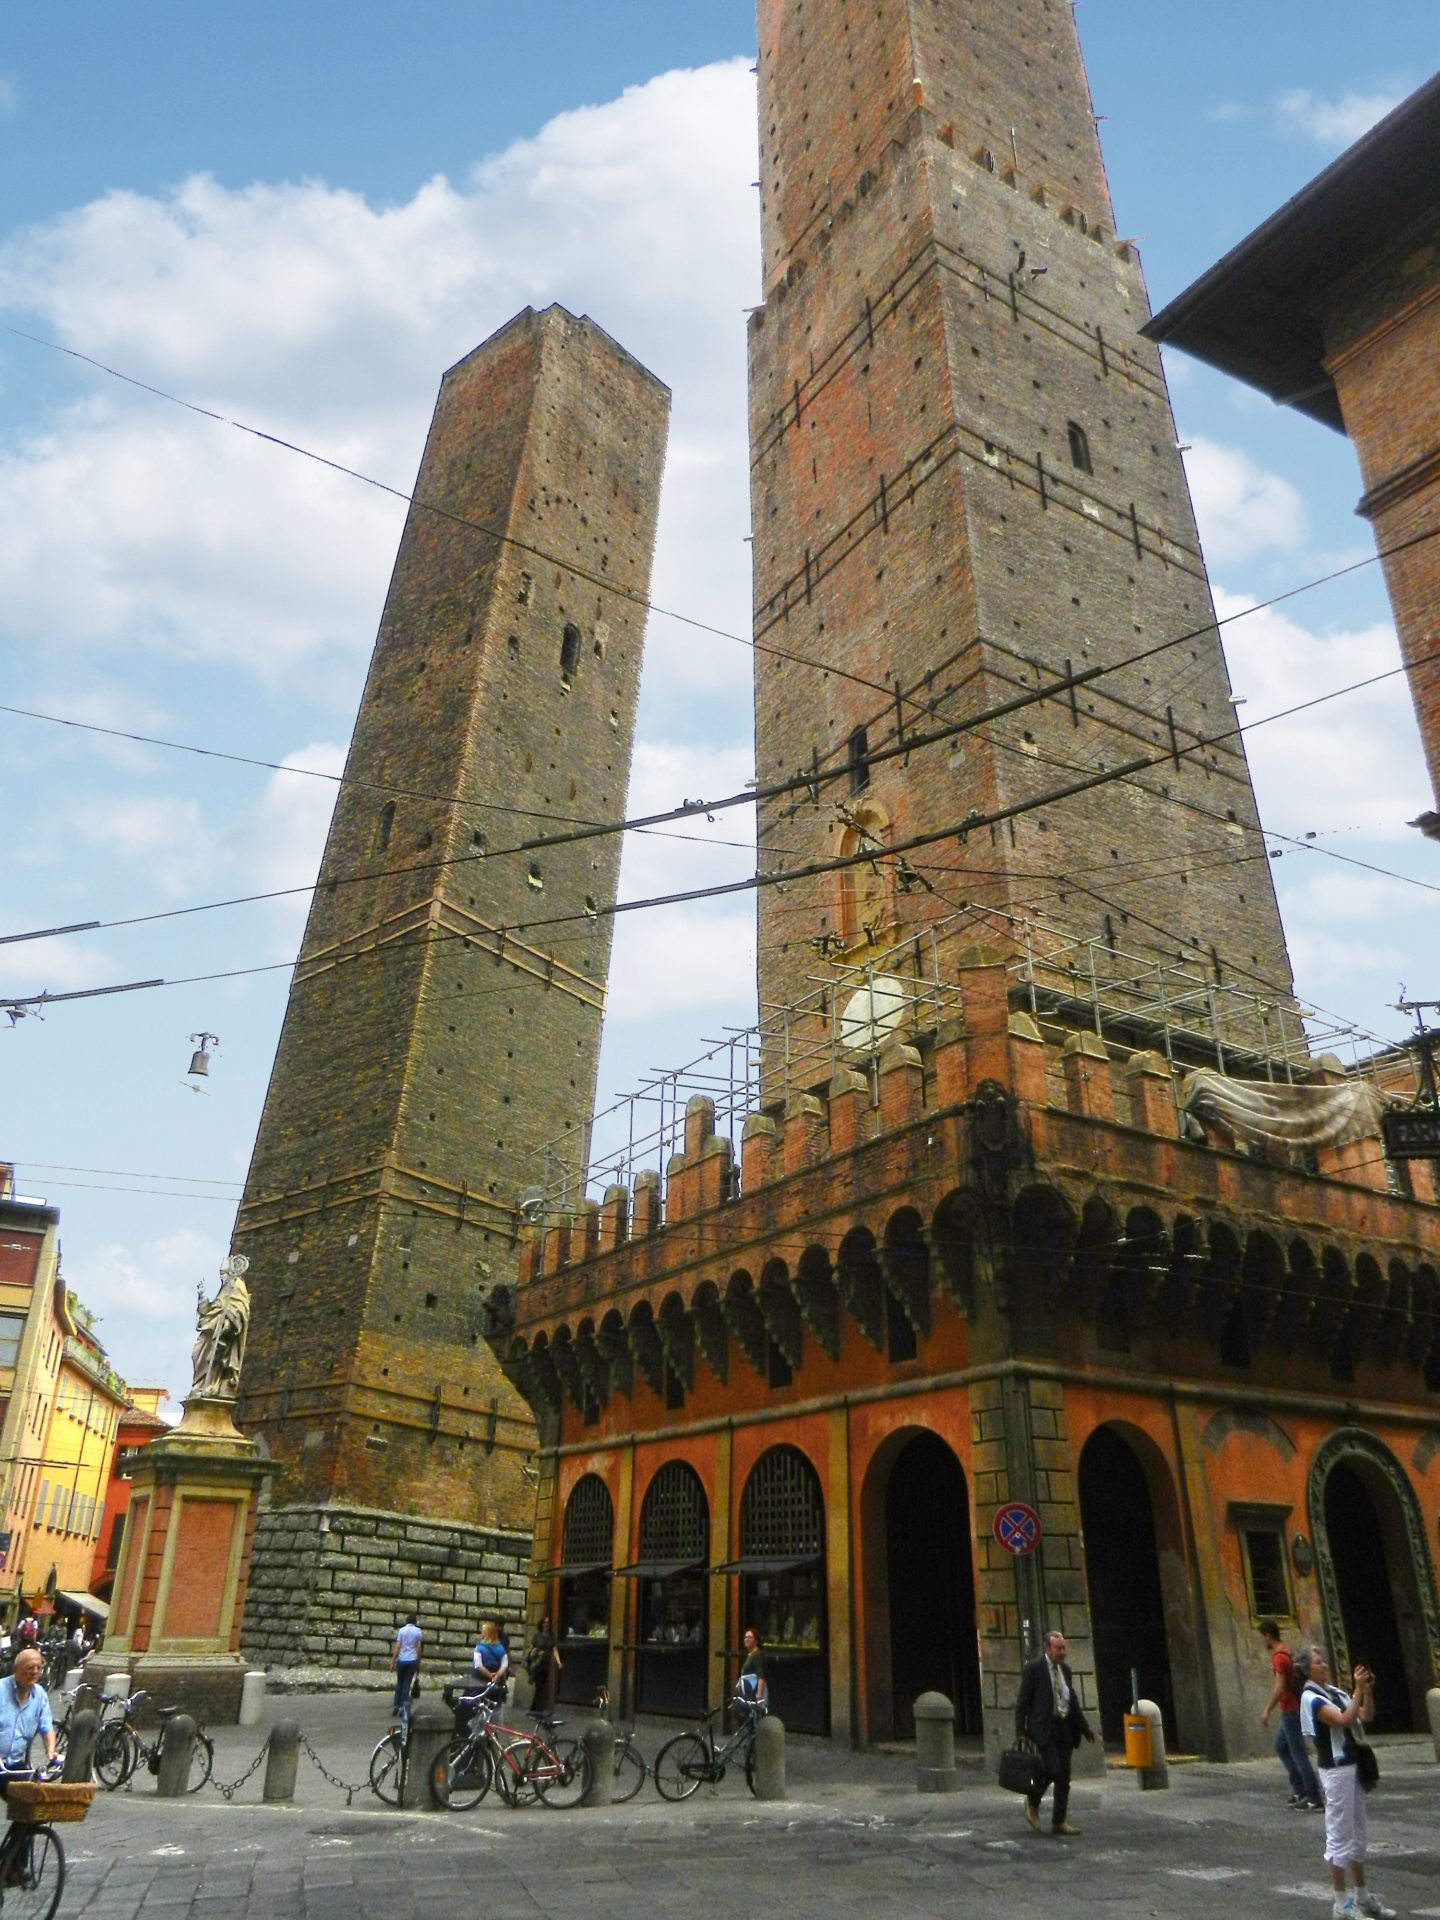 Two Towers, Bologna, Italy - The Incredibly Long Journey